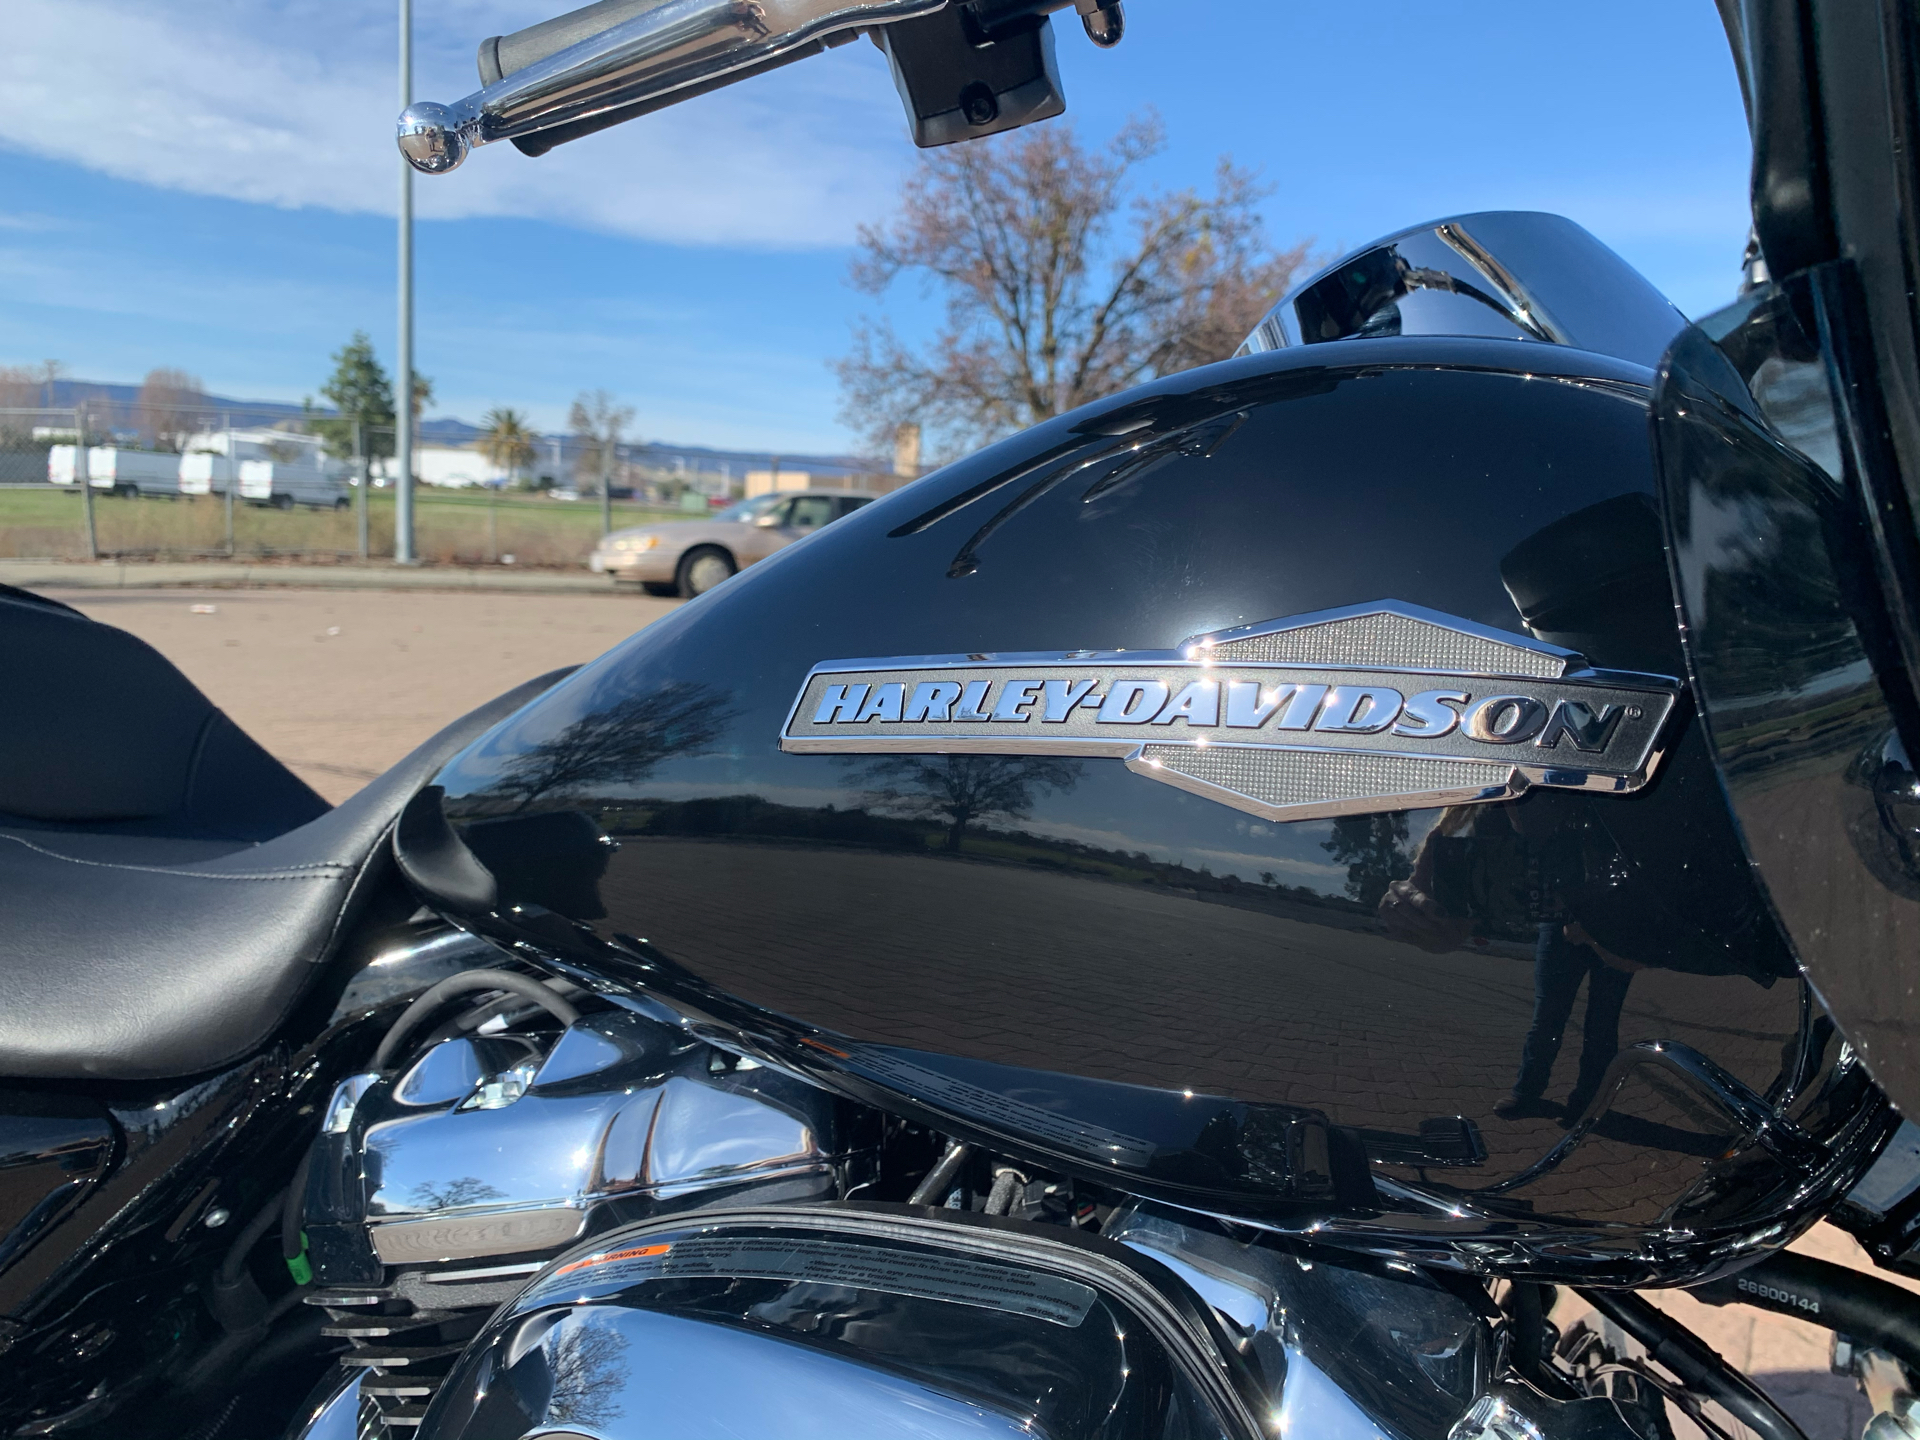 2021 Harley-Davidson Road Glide in Vacaville, California - Photo 6